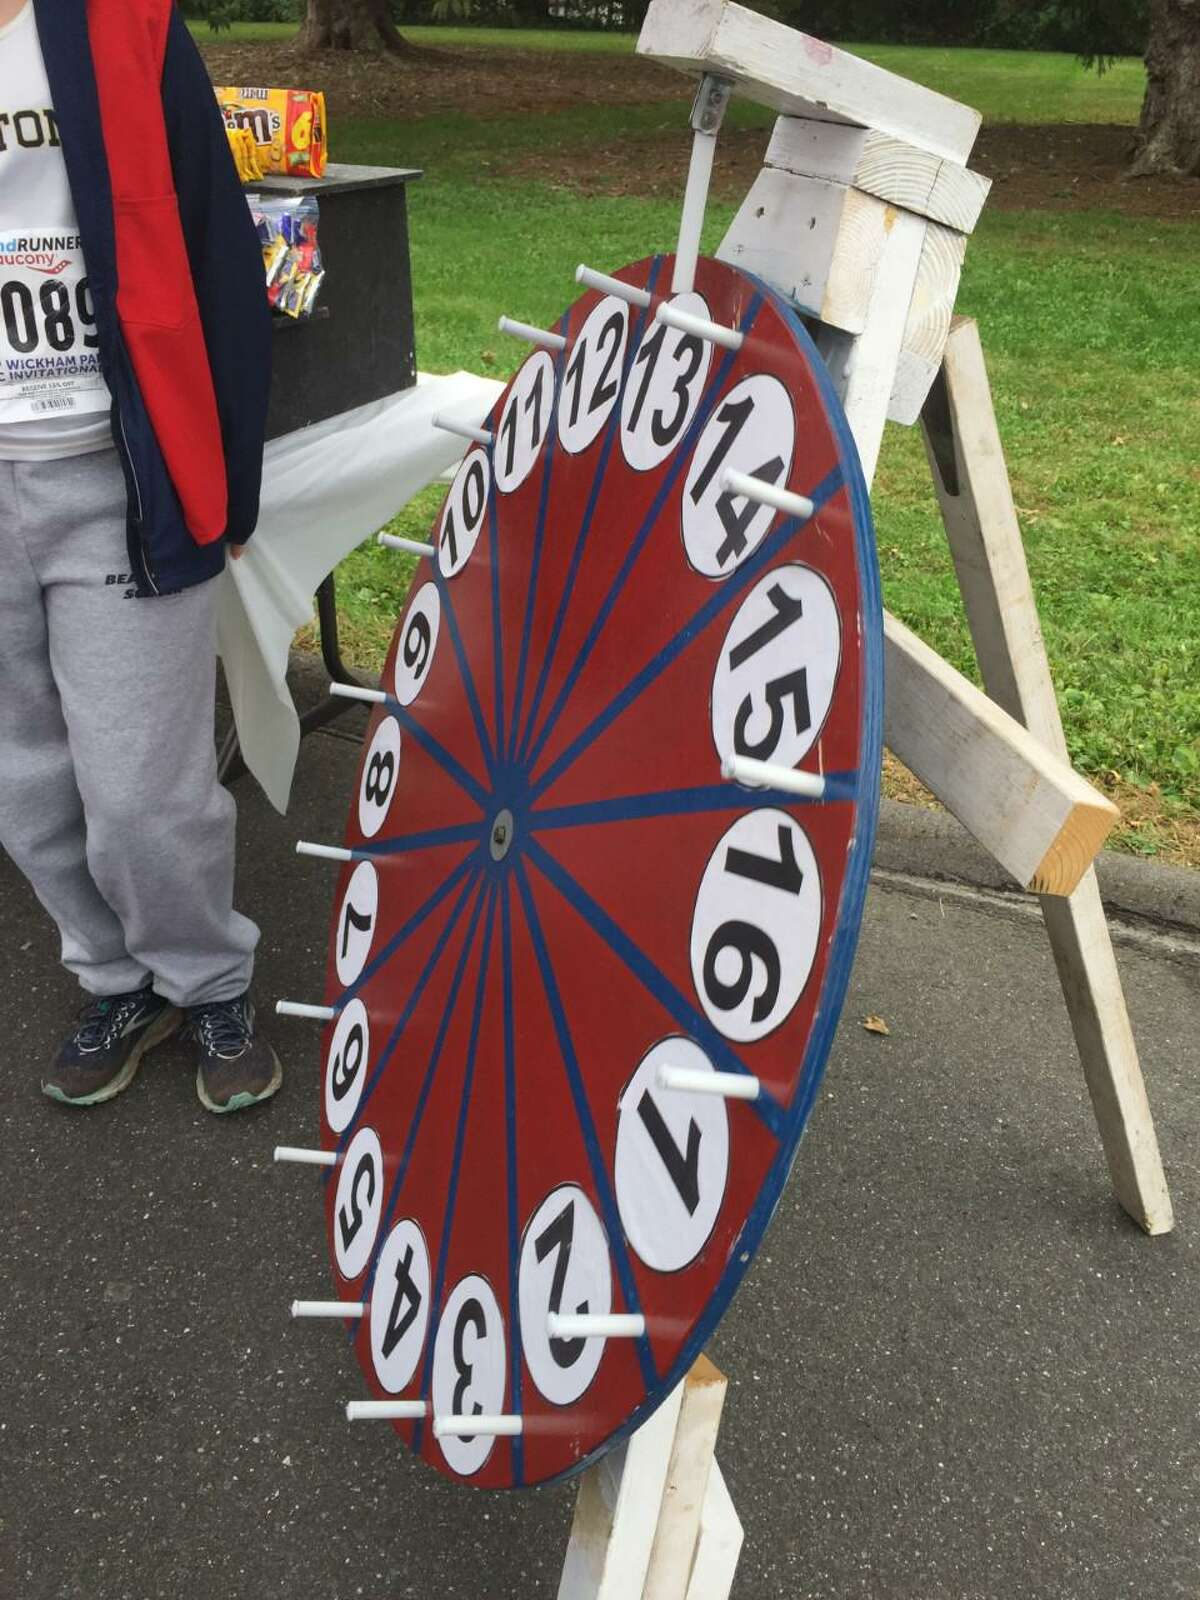 The St. Francis of Assisi Parish Family Fun Carnival at 35 Norfield Road in Weston, is taking place on the event's eleventh anniversary, from noon to 6 p.m., Oct. 2, and Oct. 3, rain, or shine. Games for people of all ages, are shown.